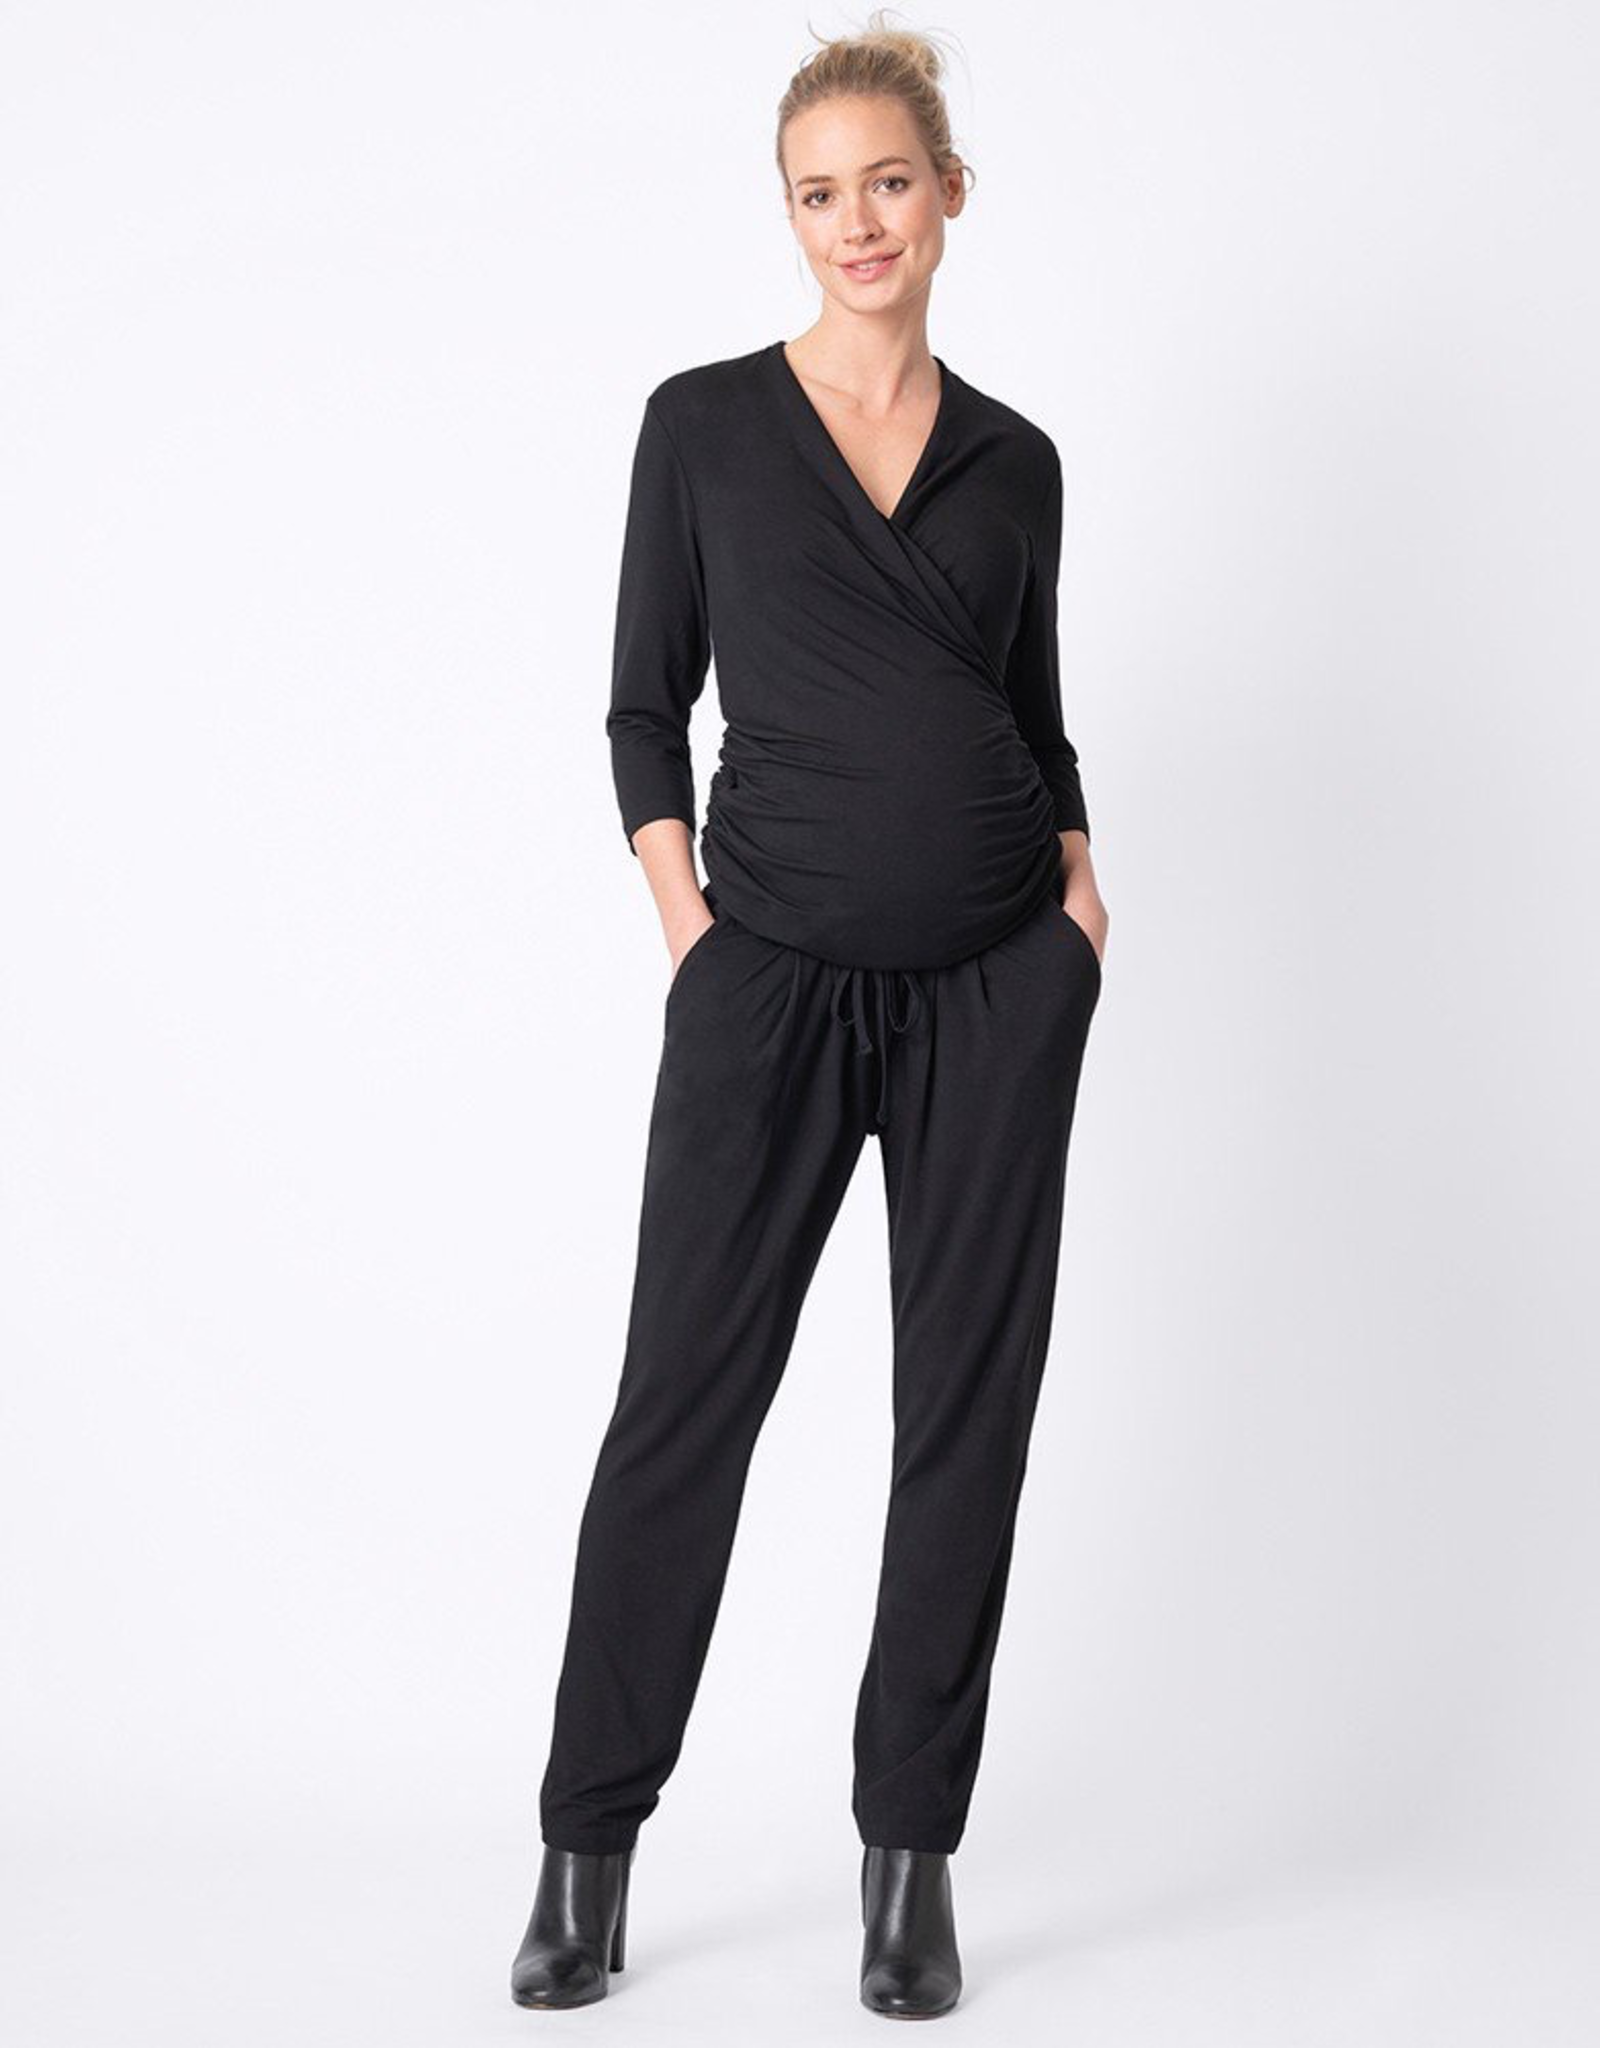 Seraphine Dove ¾ Sleeve Black Maternity / Nursing Jumpsuit